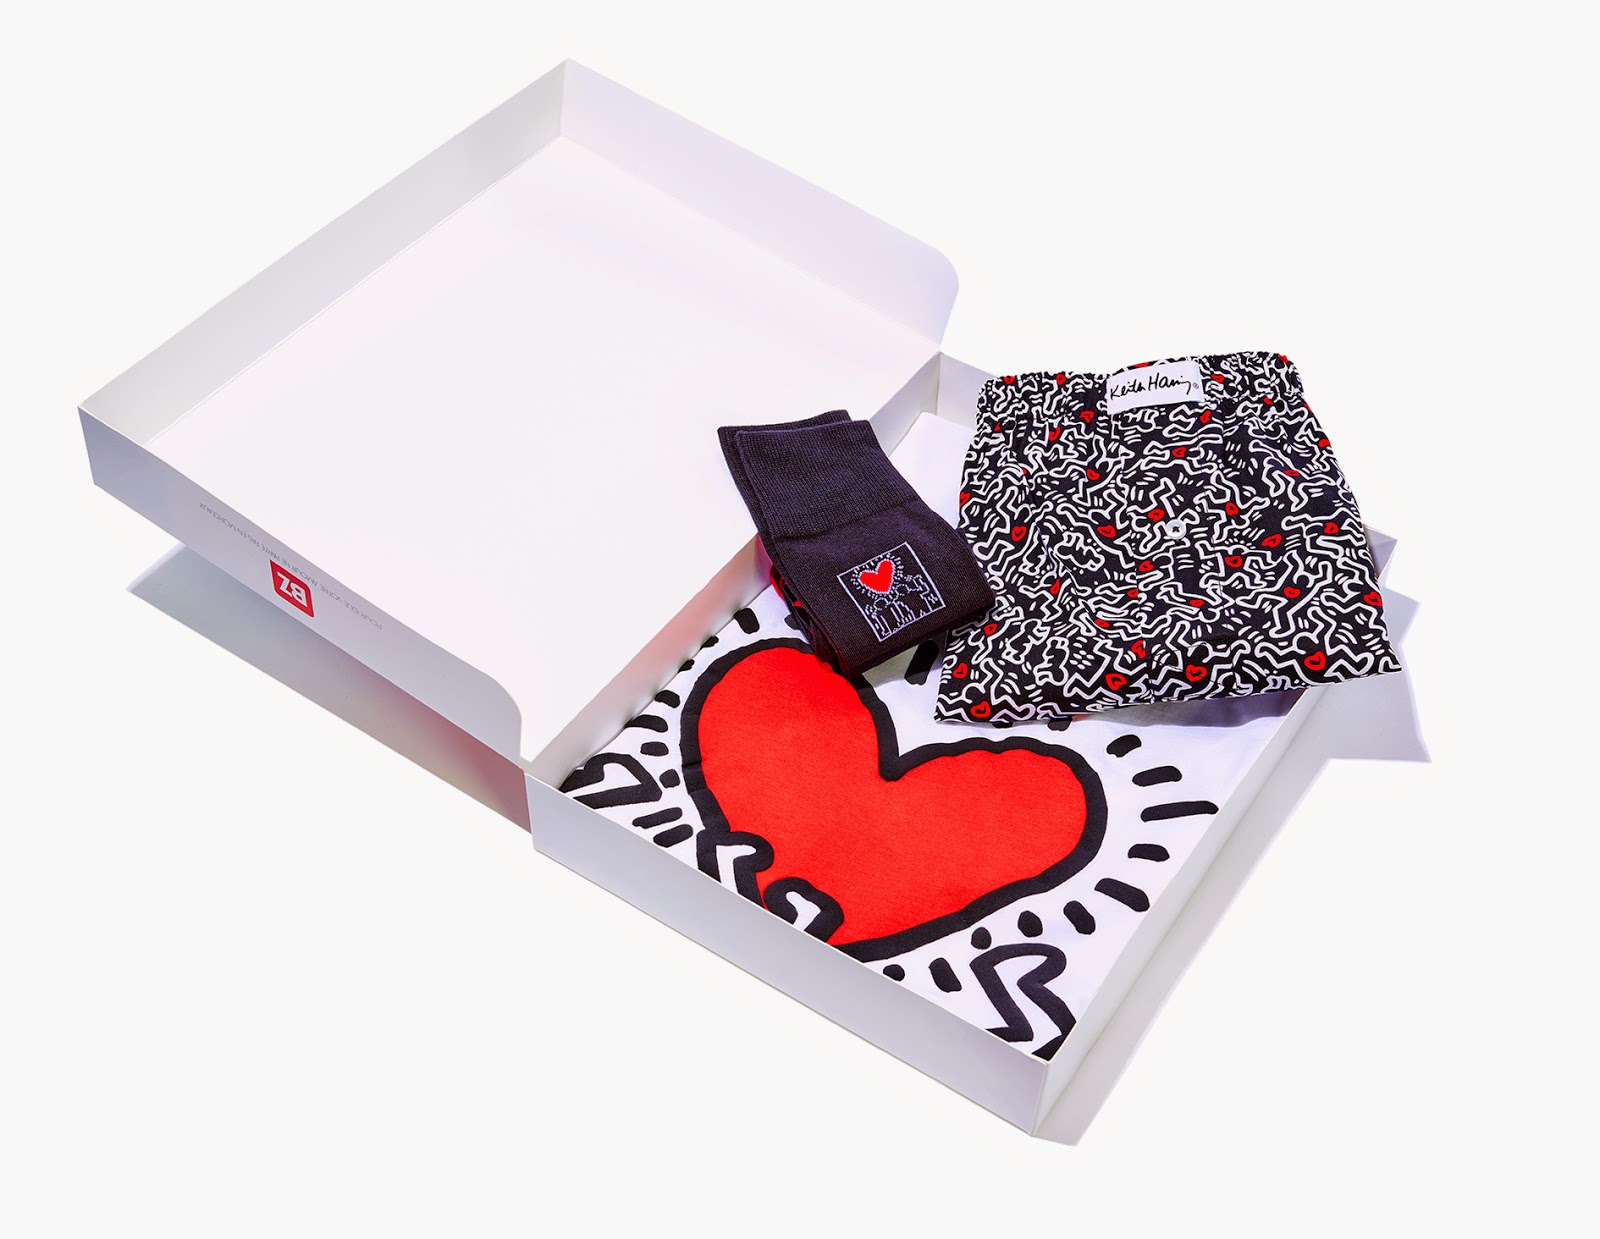 les gar ons aux foulards keith haring with love le jeu concours. Black Bedroom Furniture Sets. Home Design Ideas